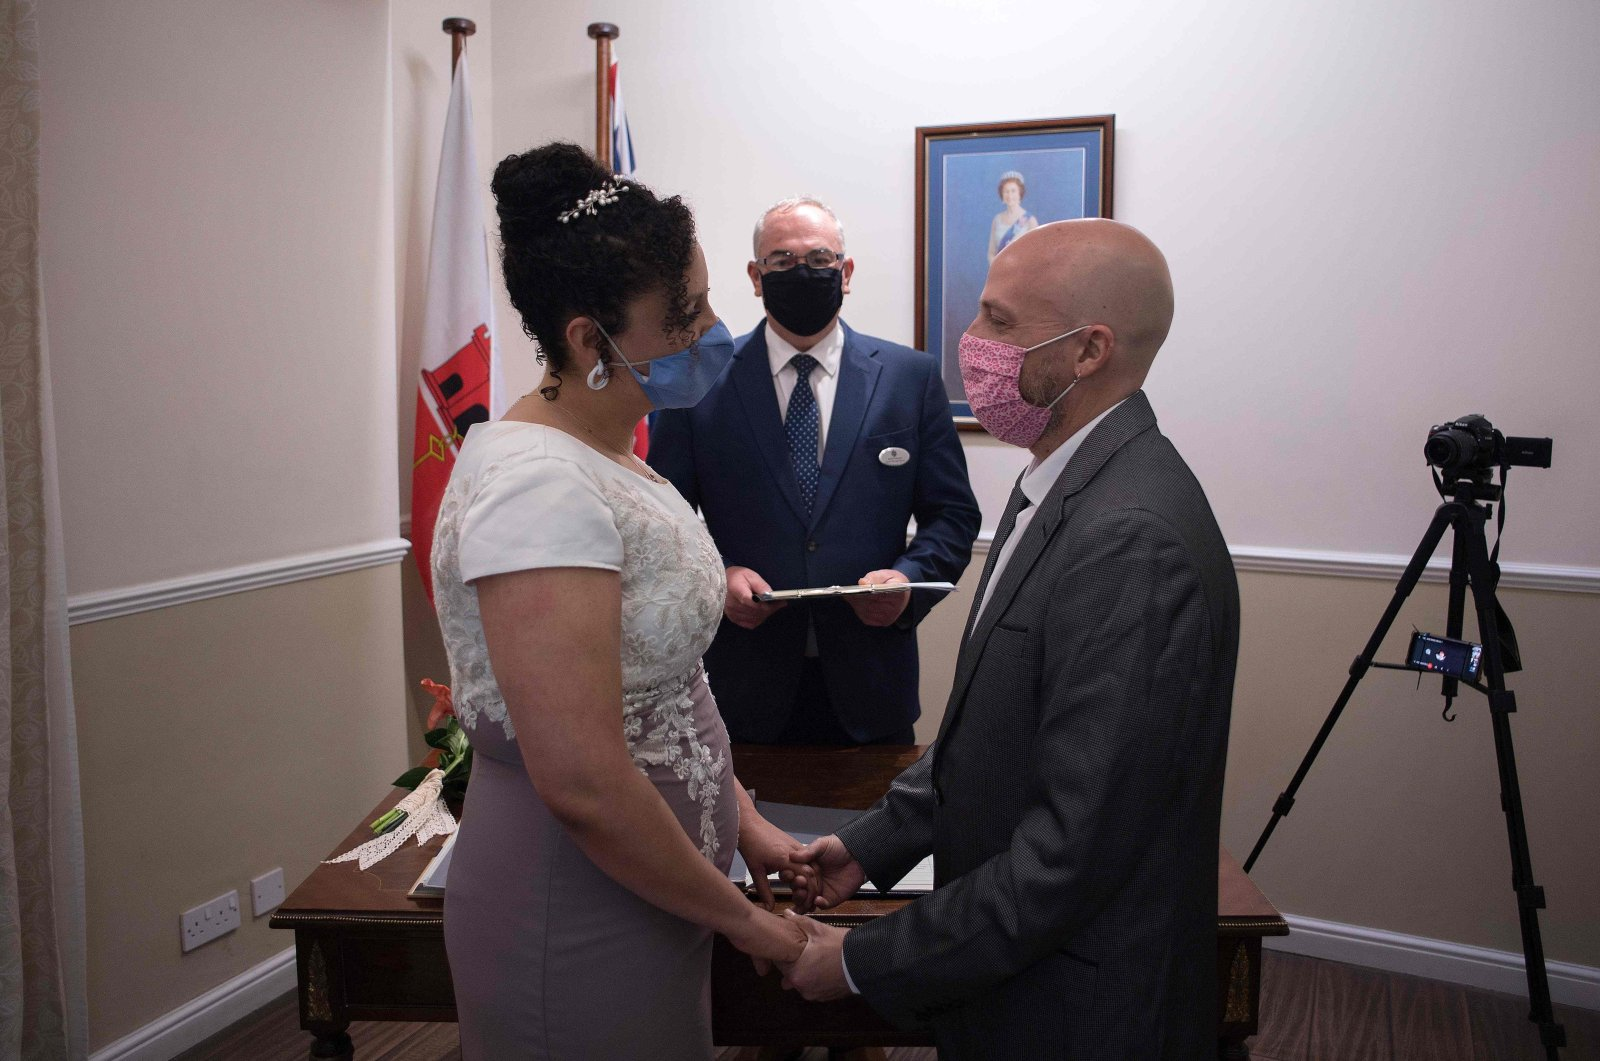 Brazilian Bruno Miani and his Brazilian partner Natalia Senna Alves de Lima (L) get married at the Civil Status and Registration Office in Gibraltar on Nov. 24, 2020. (AFP Photo)